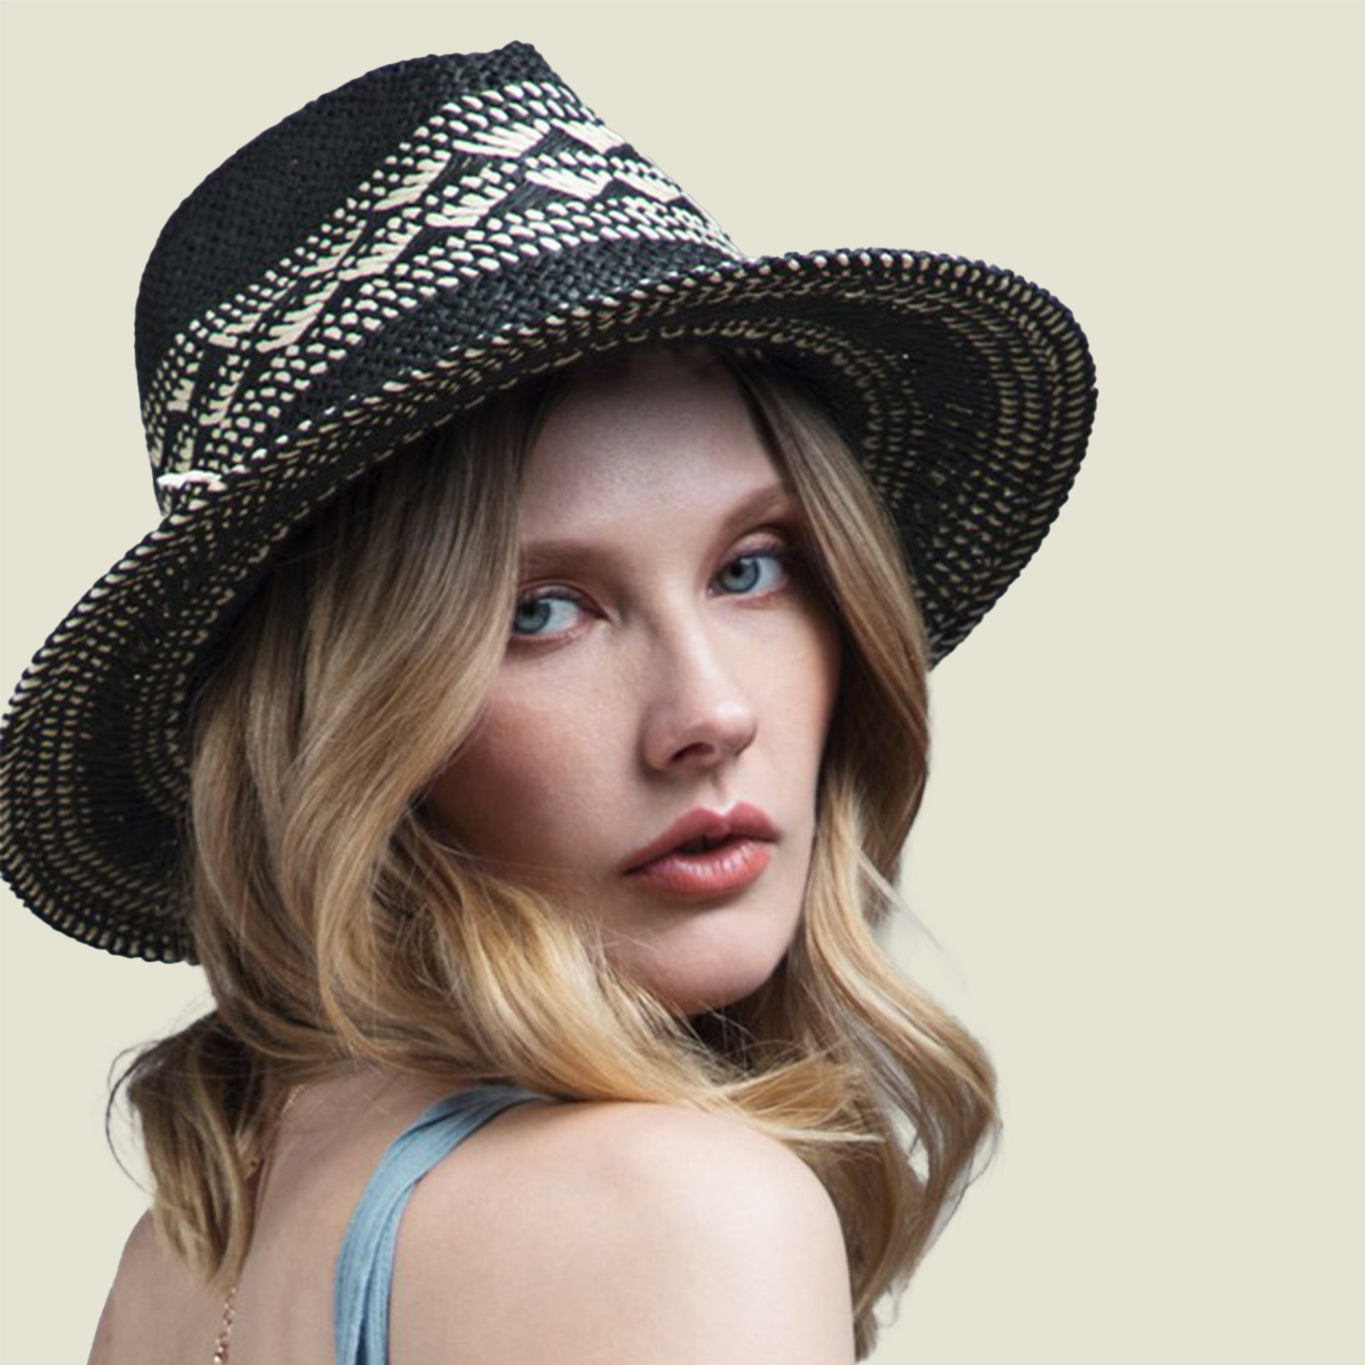 Crisscross Panama Hat Black - Blackbird General Store